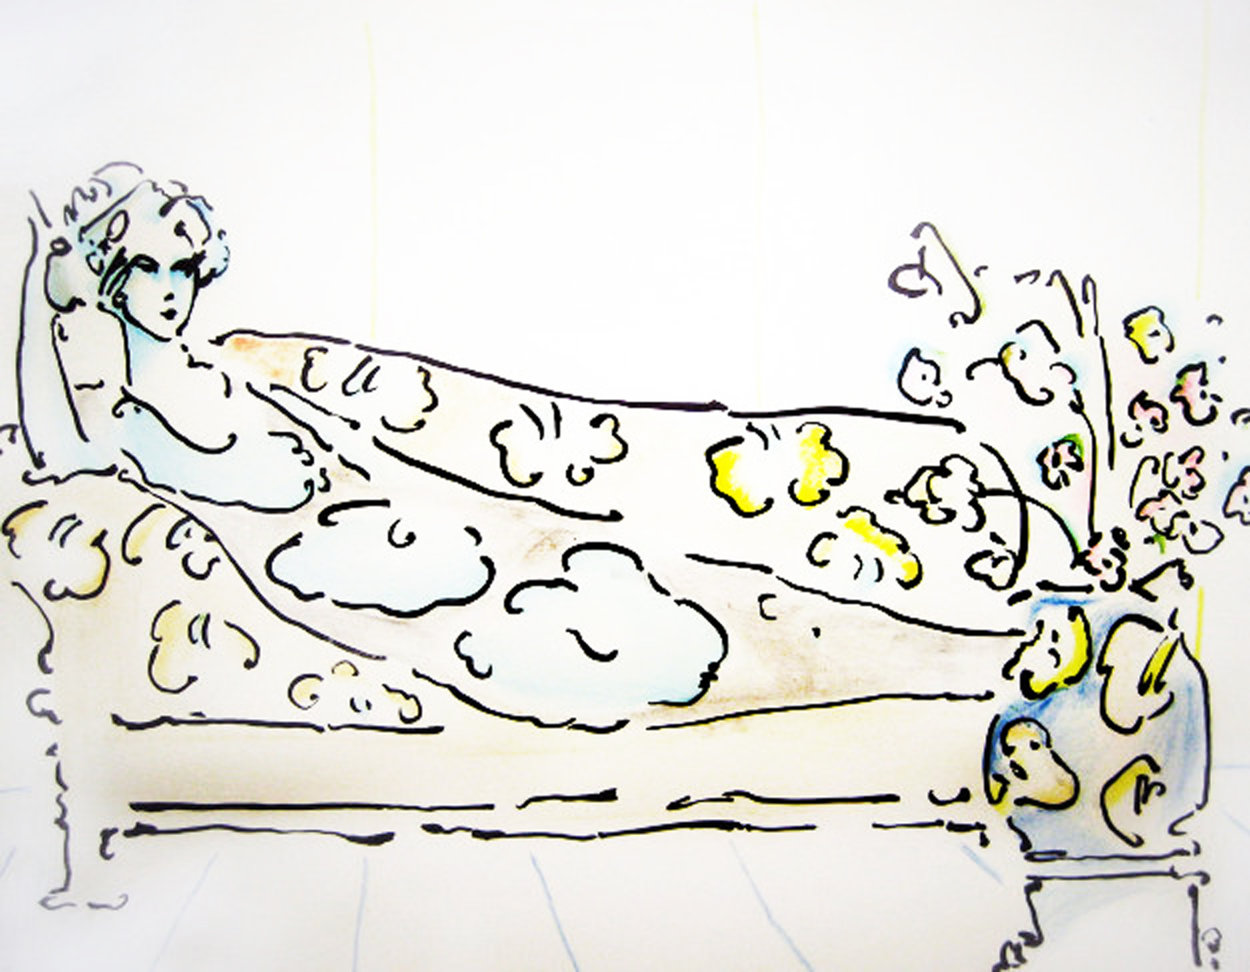 Lady on the Couch 1974 (Vintage) Limited Edition Print by Peter Max